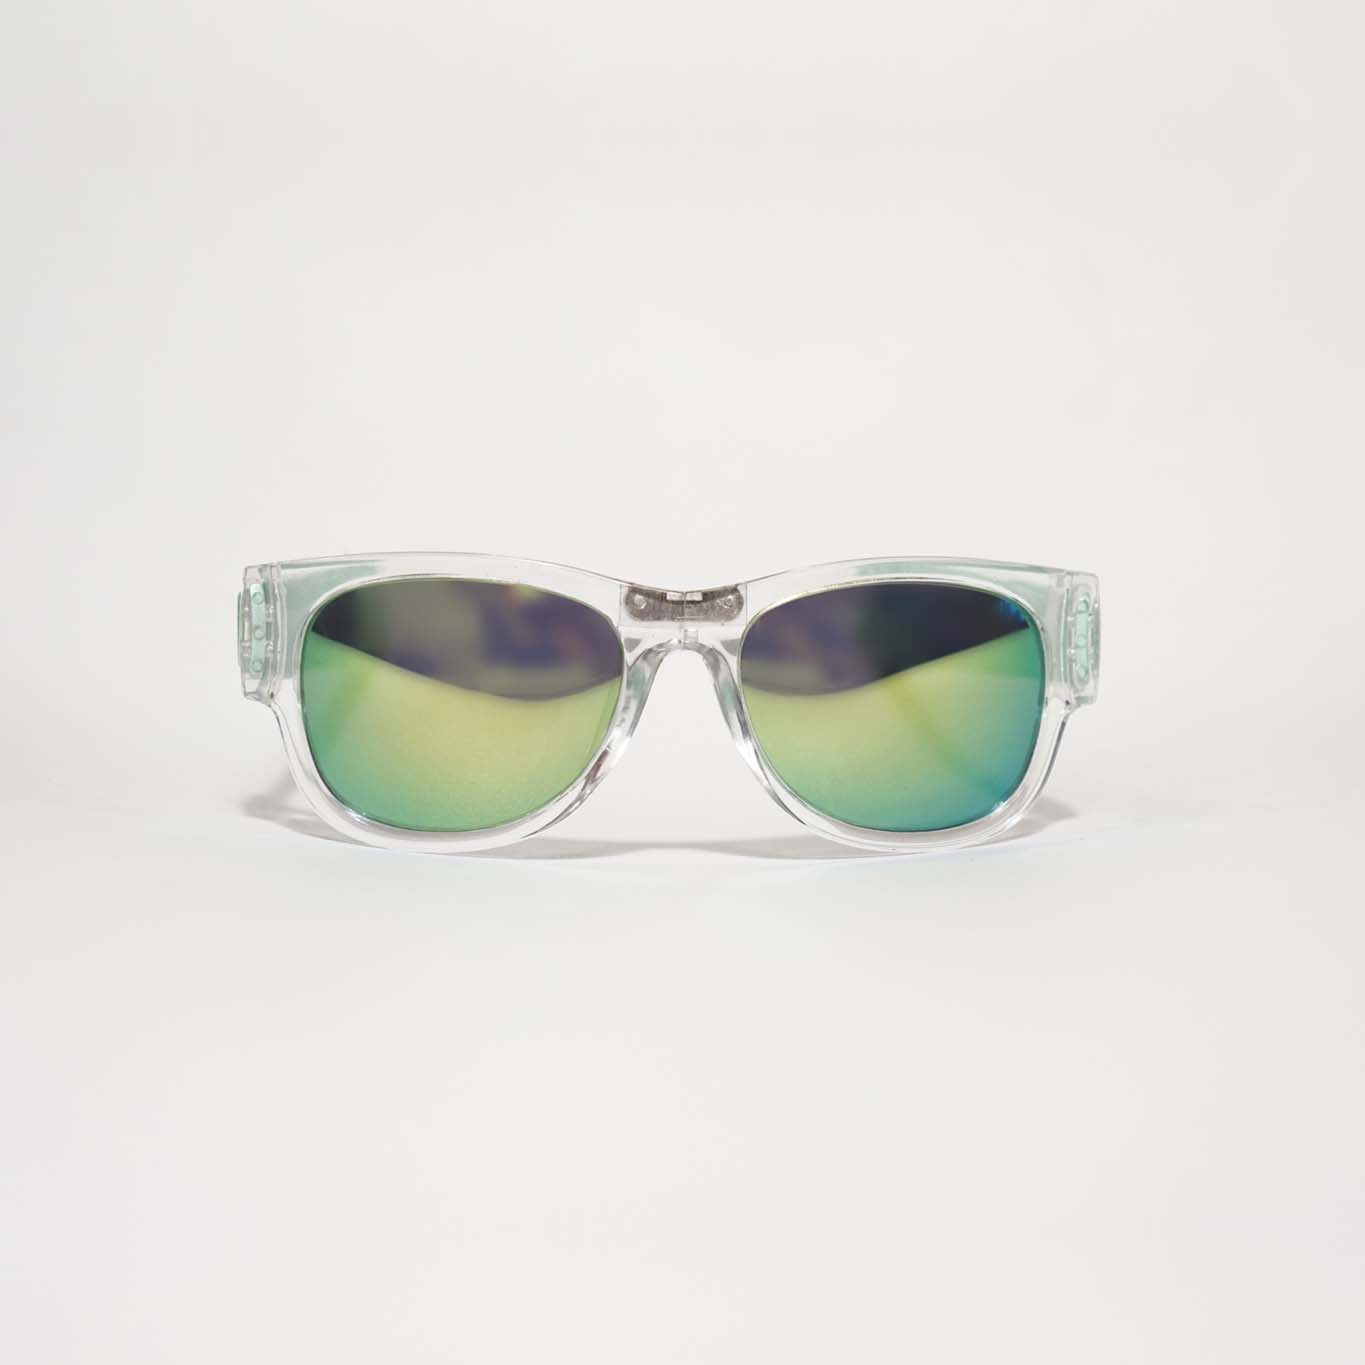 Mint Snappies: Polarized